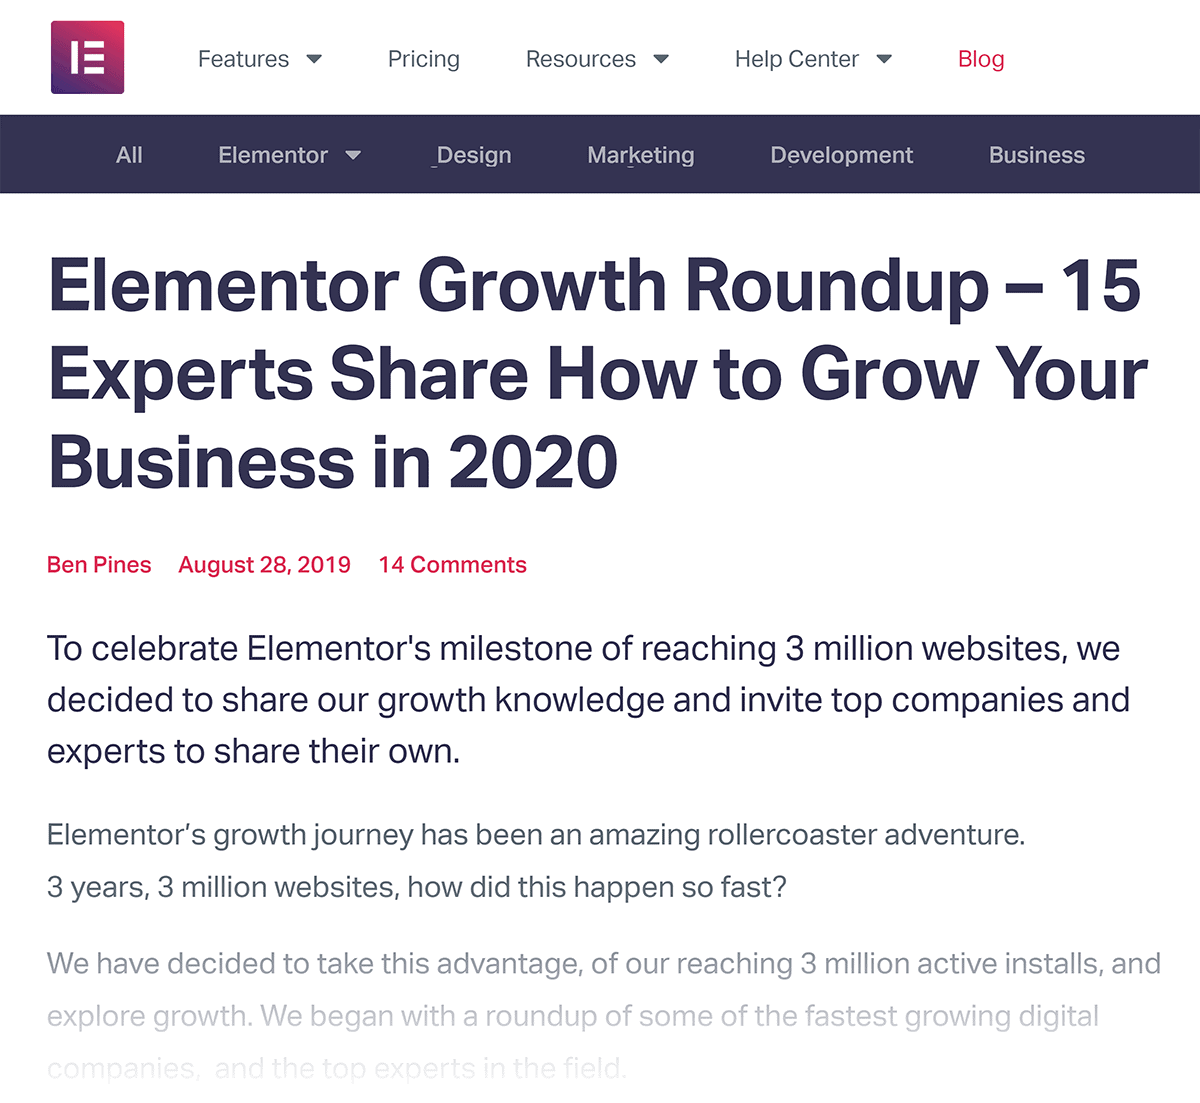 Elementor Growth Roundup